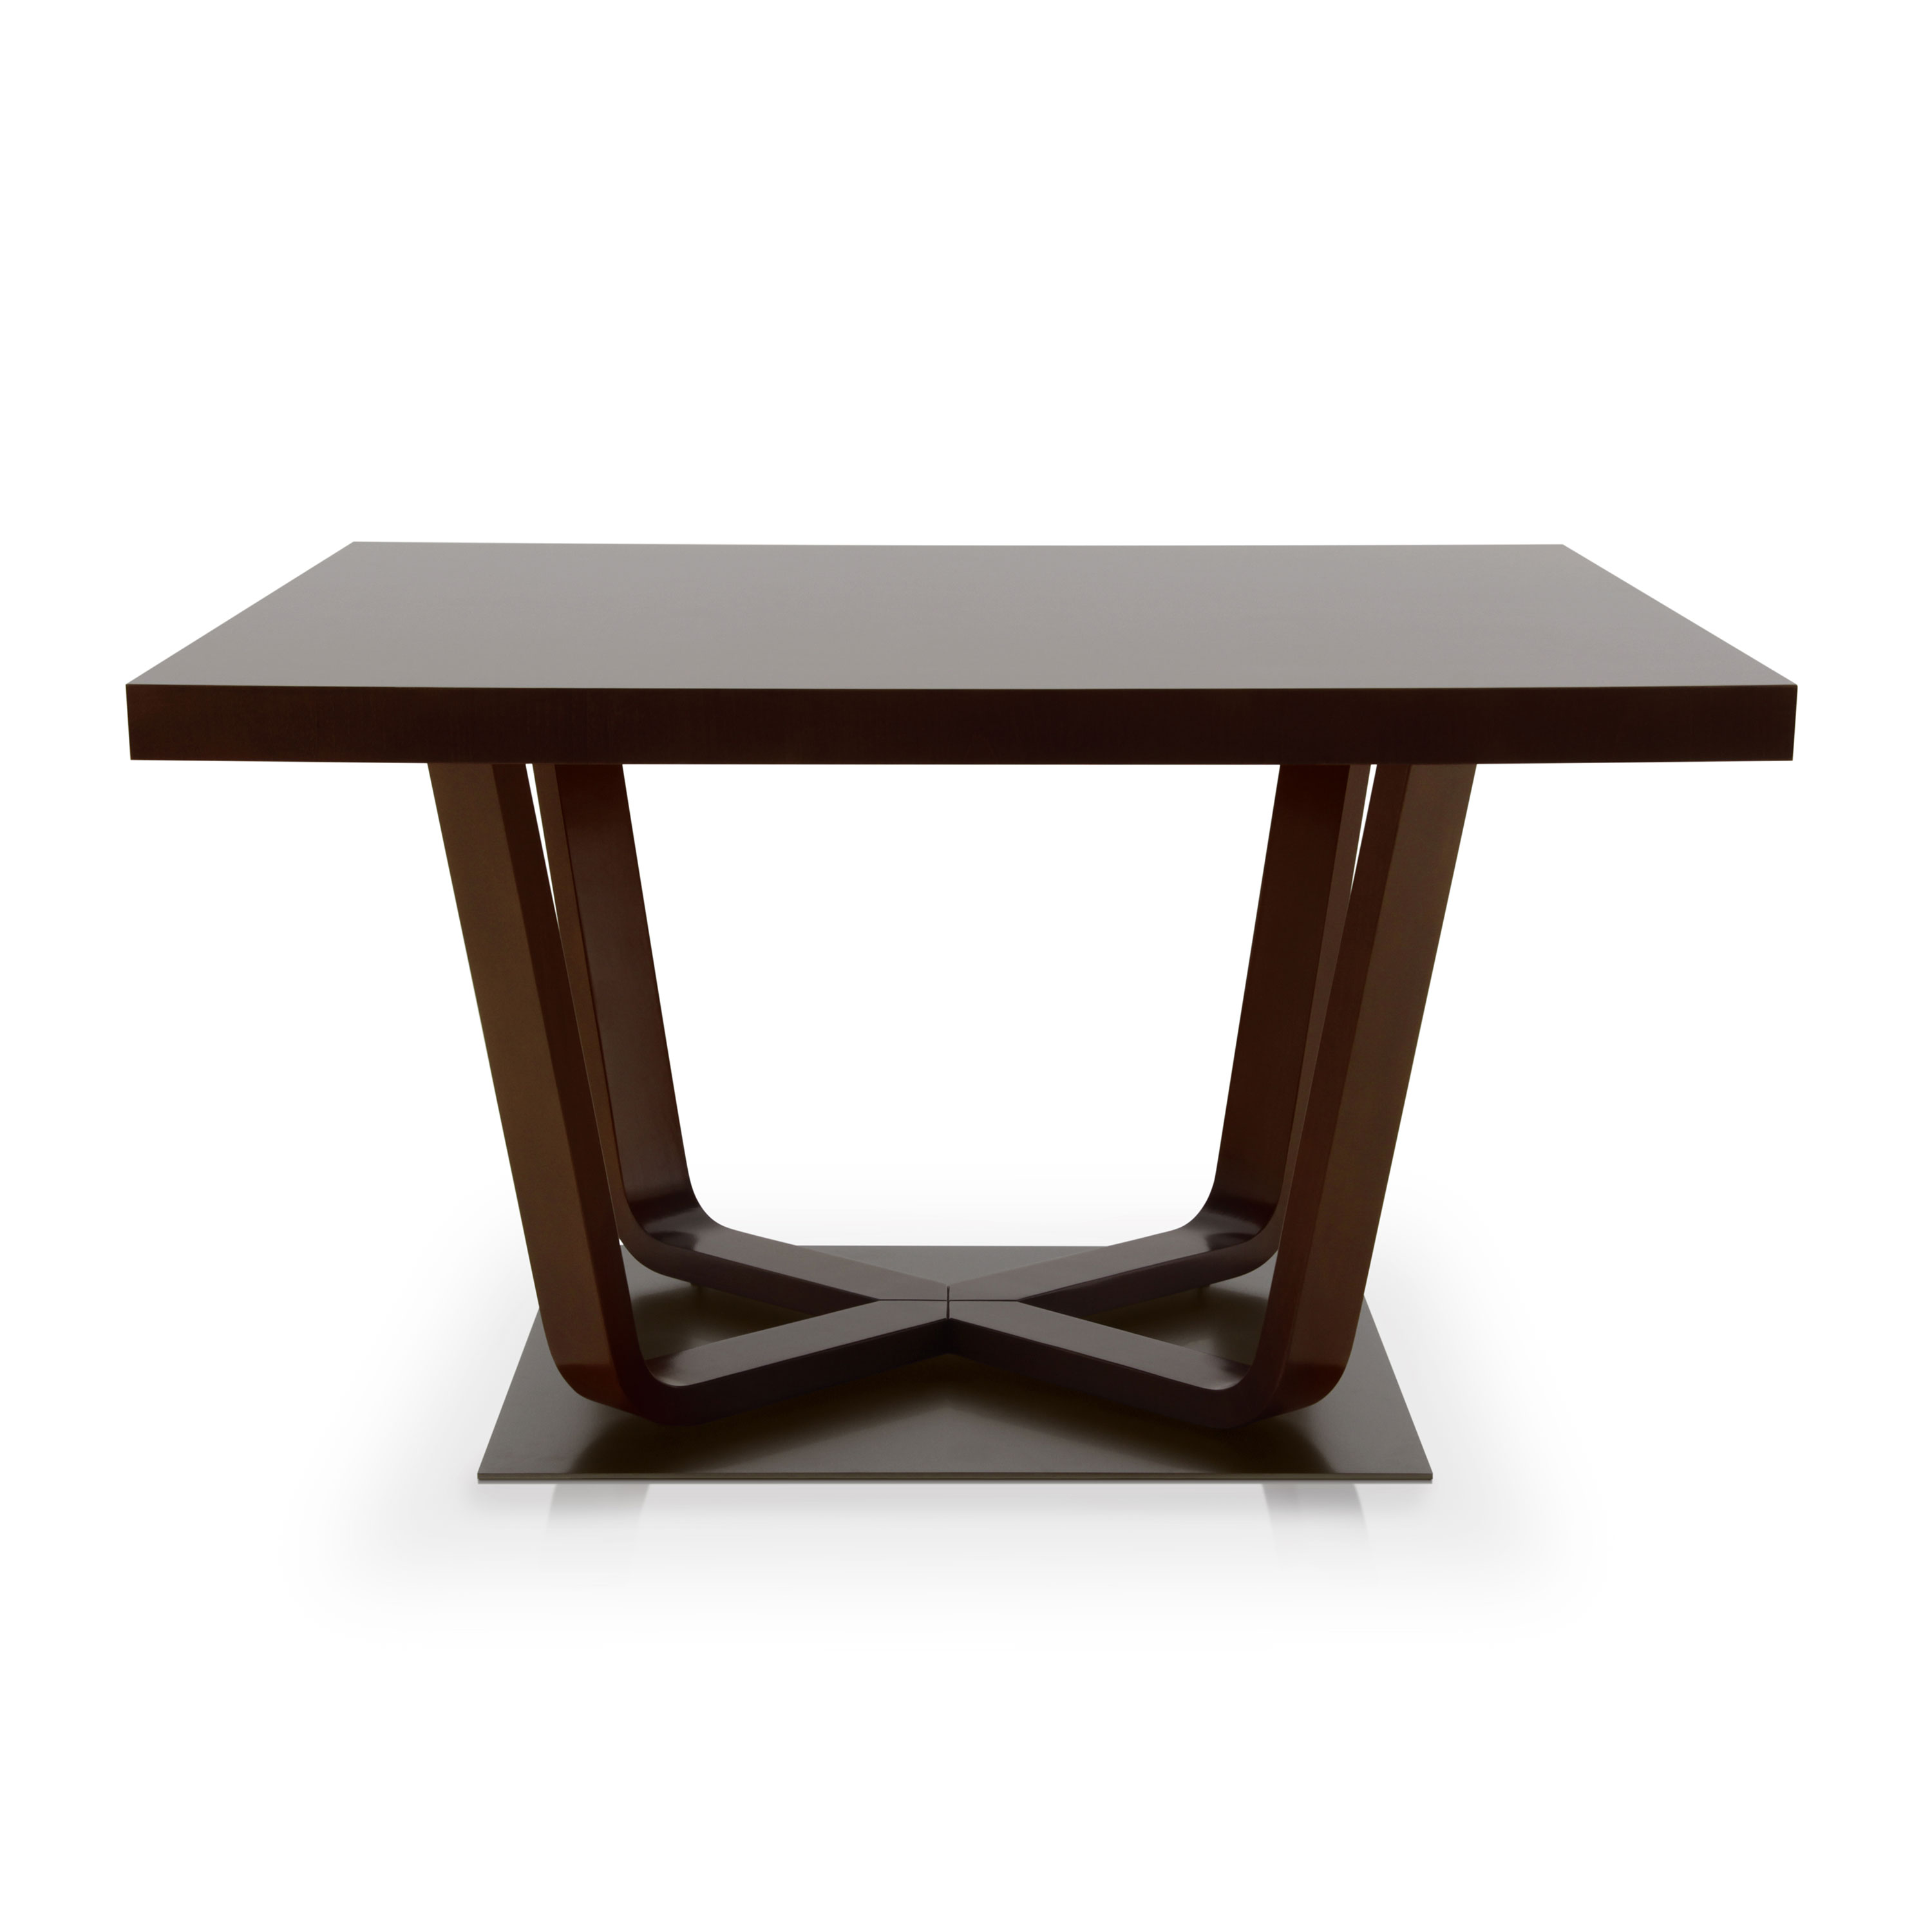 Contemporary Style Table Made Of Wood Custom039 Sevensedie